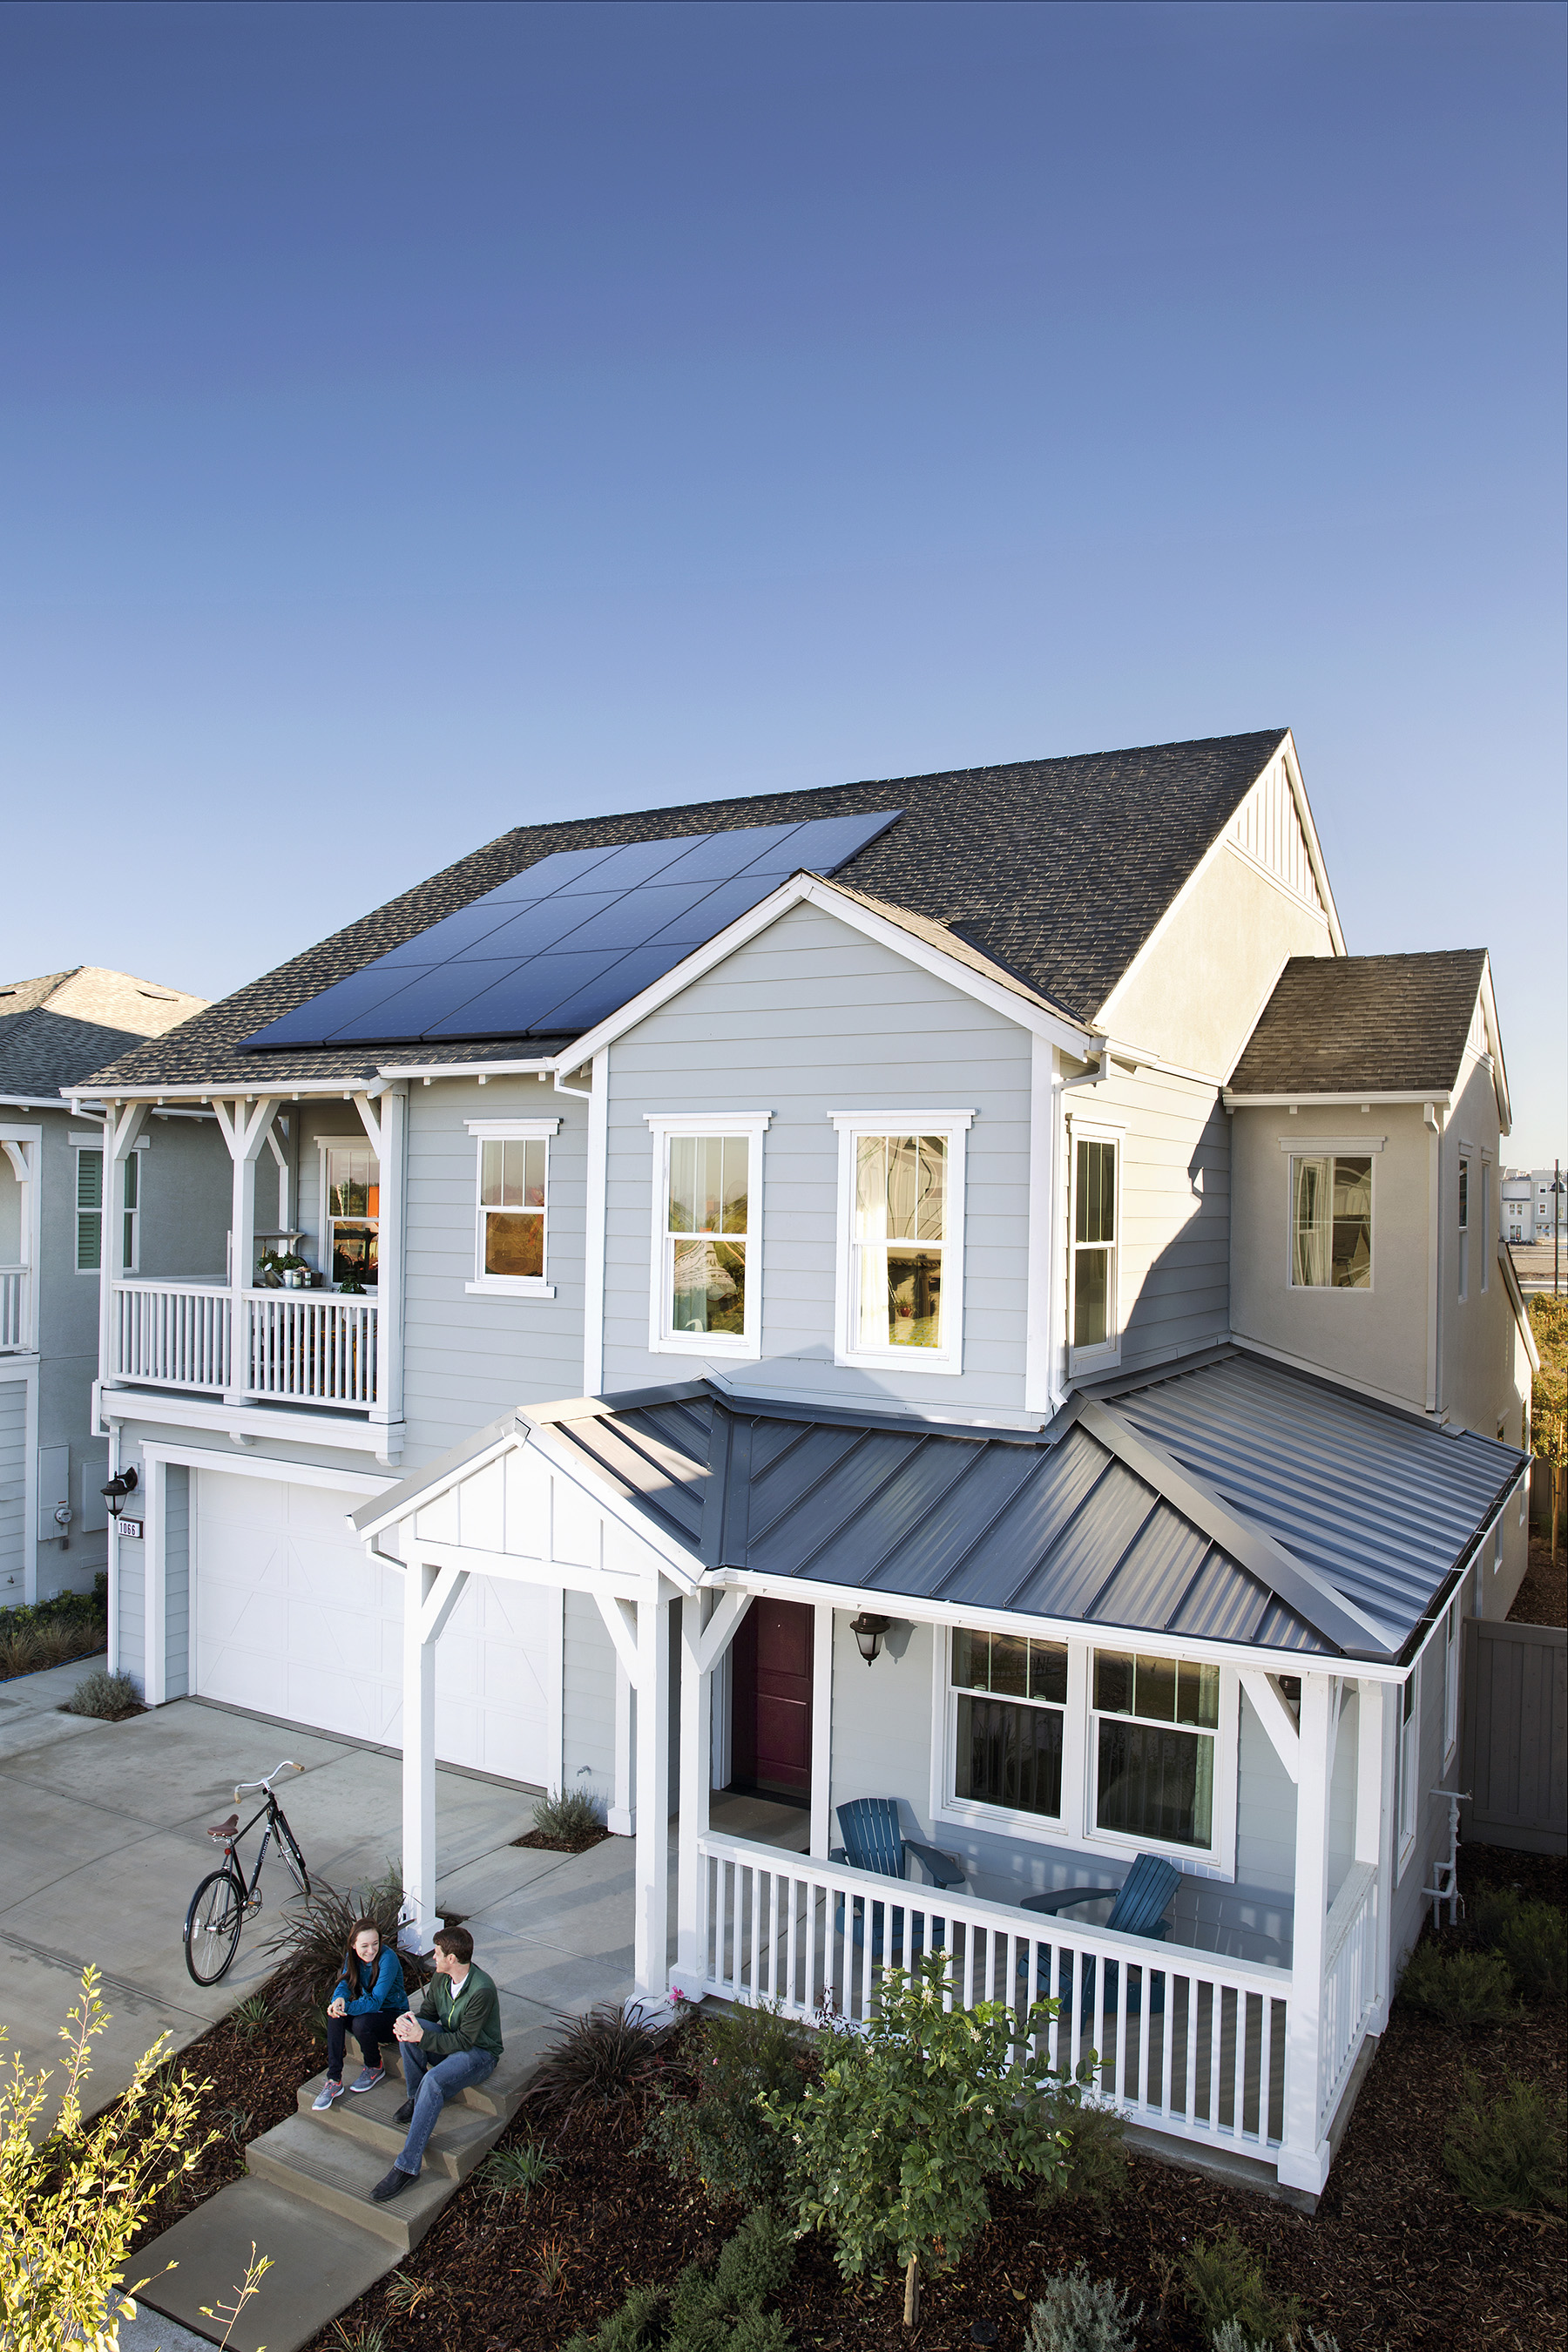 EnergyLink™ ecosystem, a Smart Energy management platform that tracks energy production and consumption in real time, empowers homeowners to set energy goals and take control of their energy future.